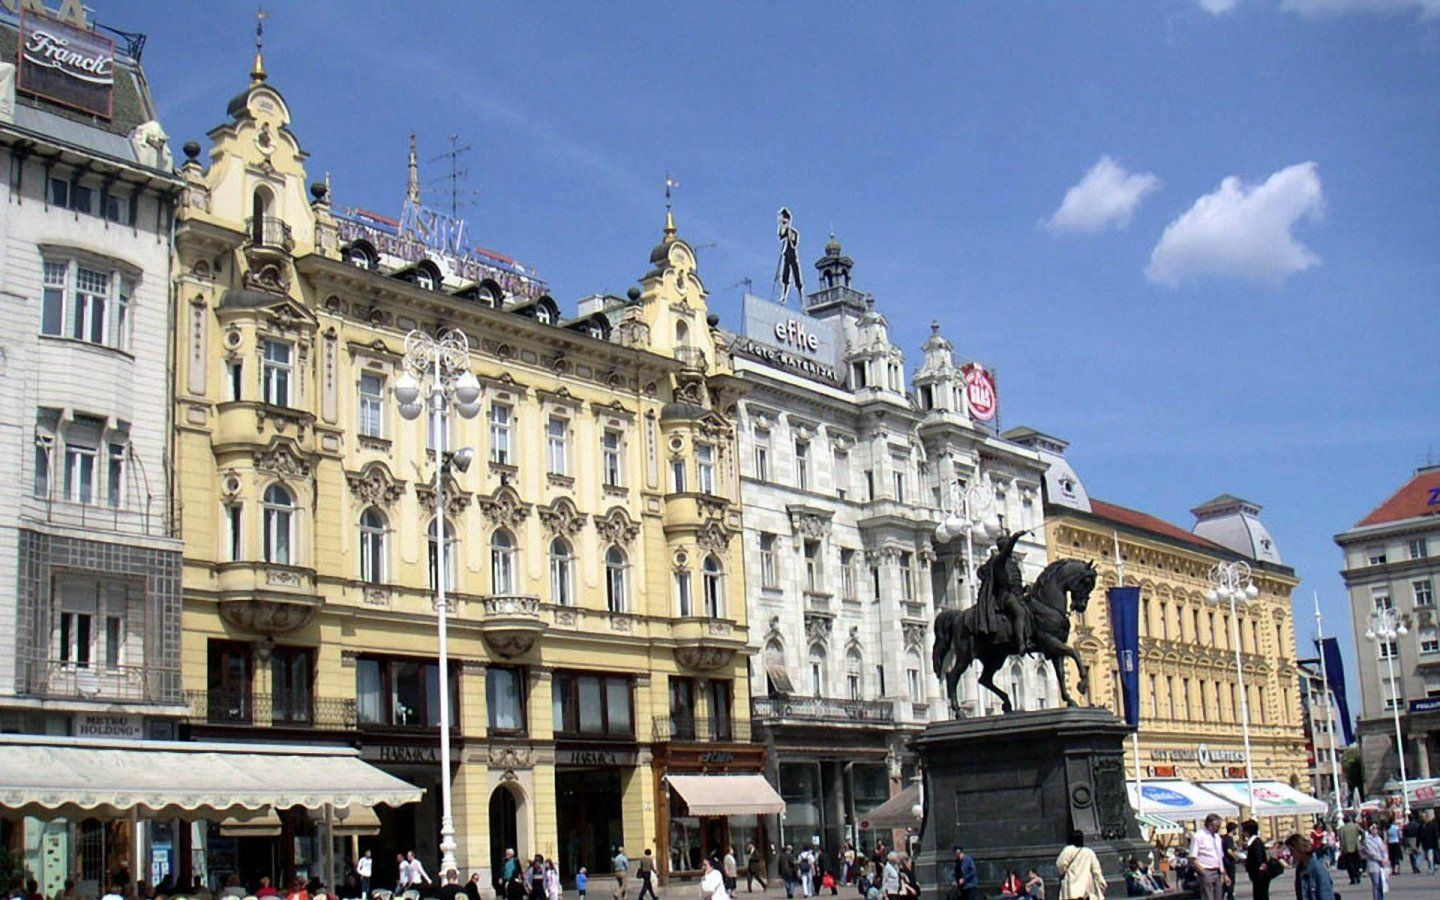 Zagreb sightseeing 1440x900 Wallpapers,Zagreb 1440x900 Wallpapers ...